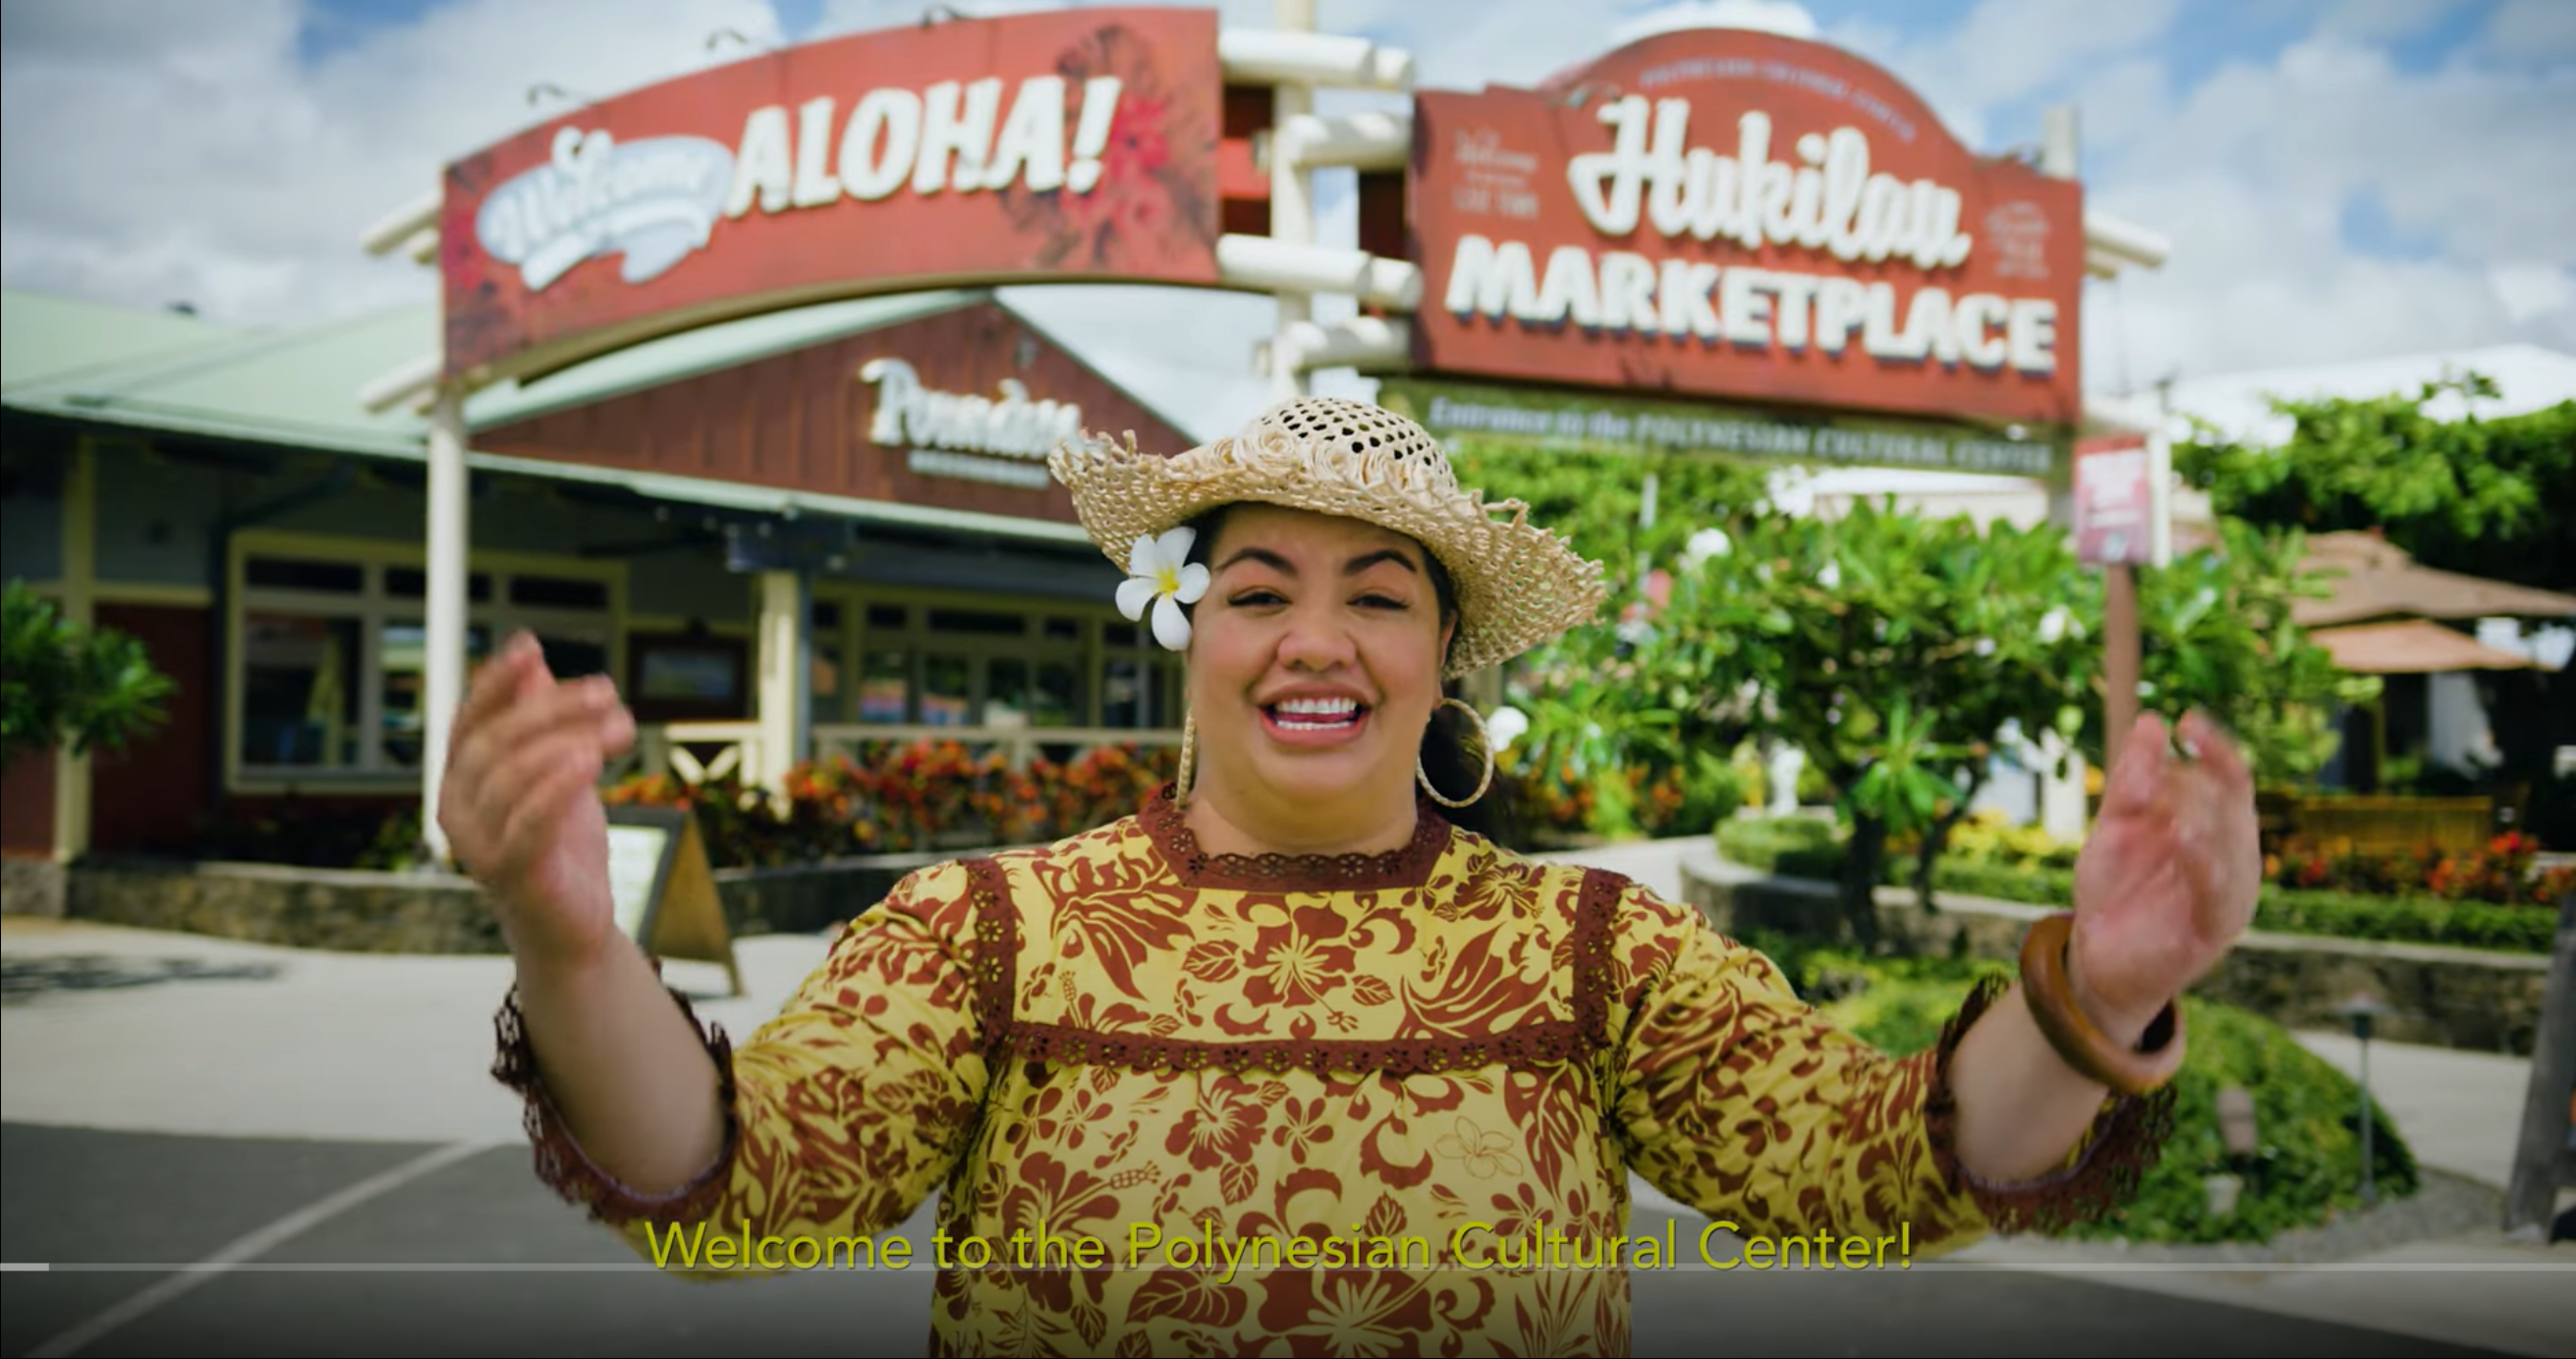 Telesia Tonga welcoming guests to the Polynesian Cultural Center and Hukilau Marketplace